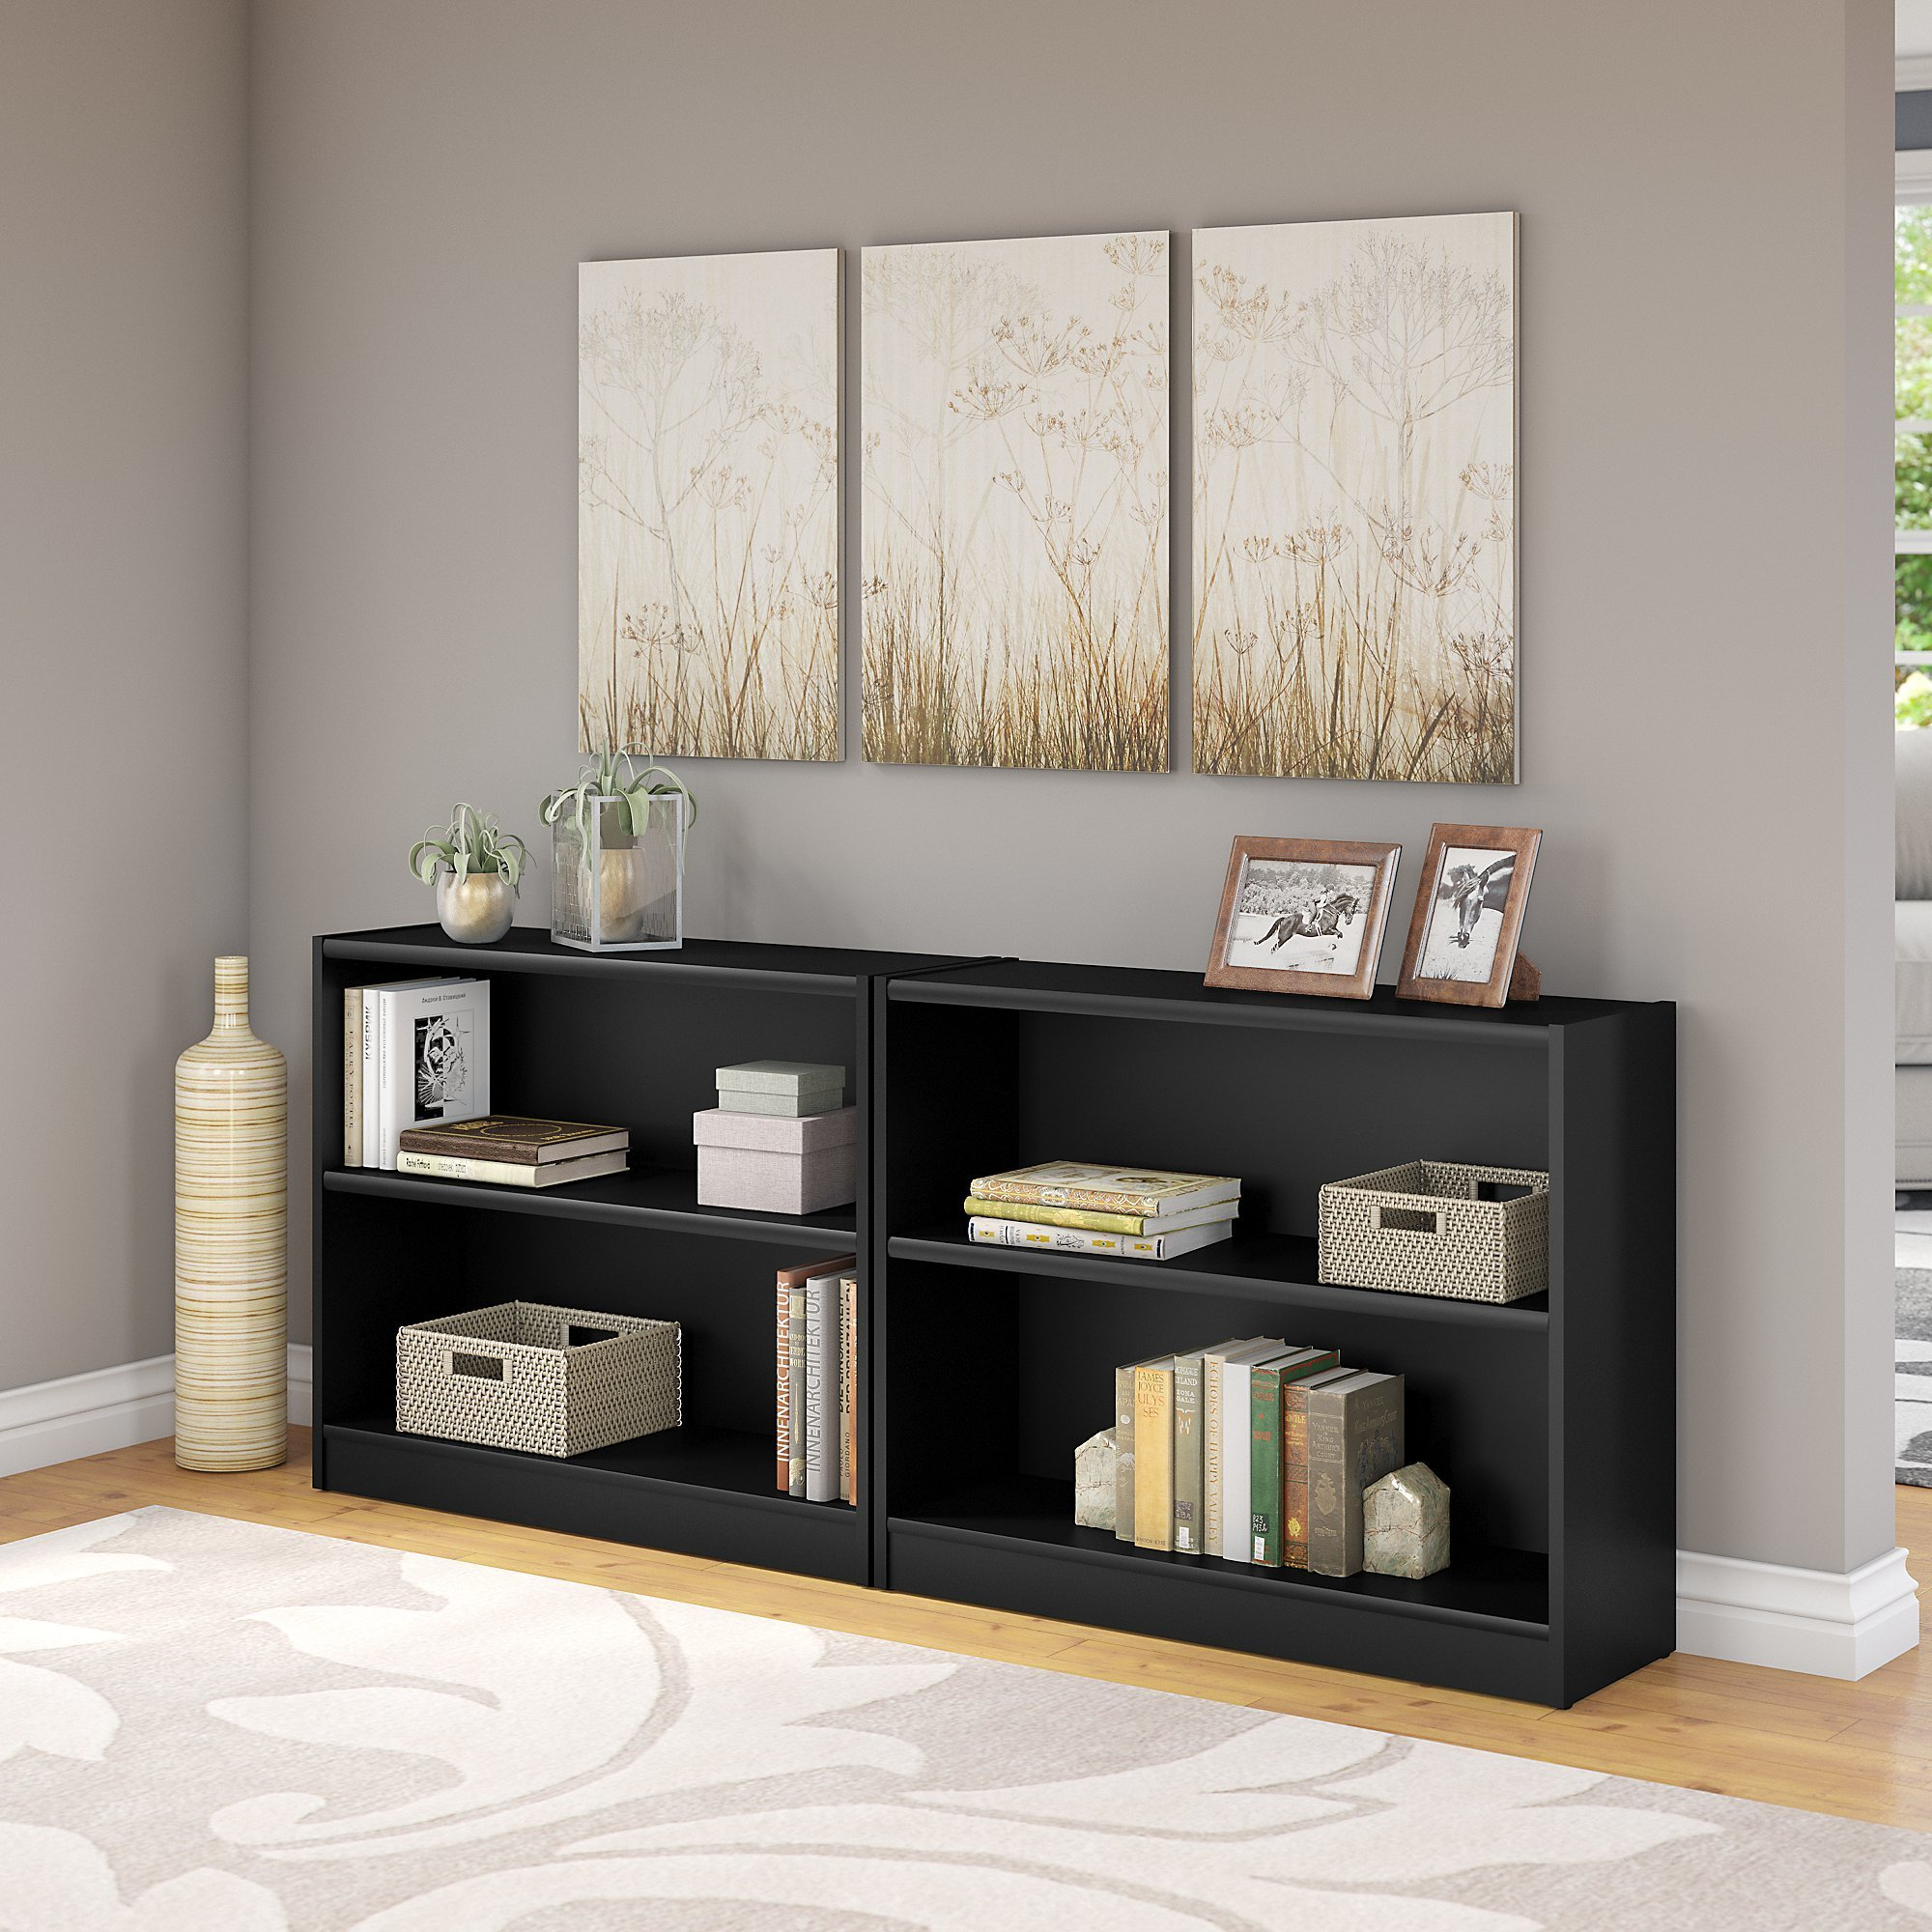 Innenarchitektur College Universal 2 Shelf Bookcase Set Of 2 In Classic Black